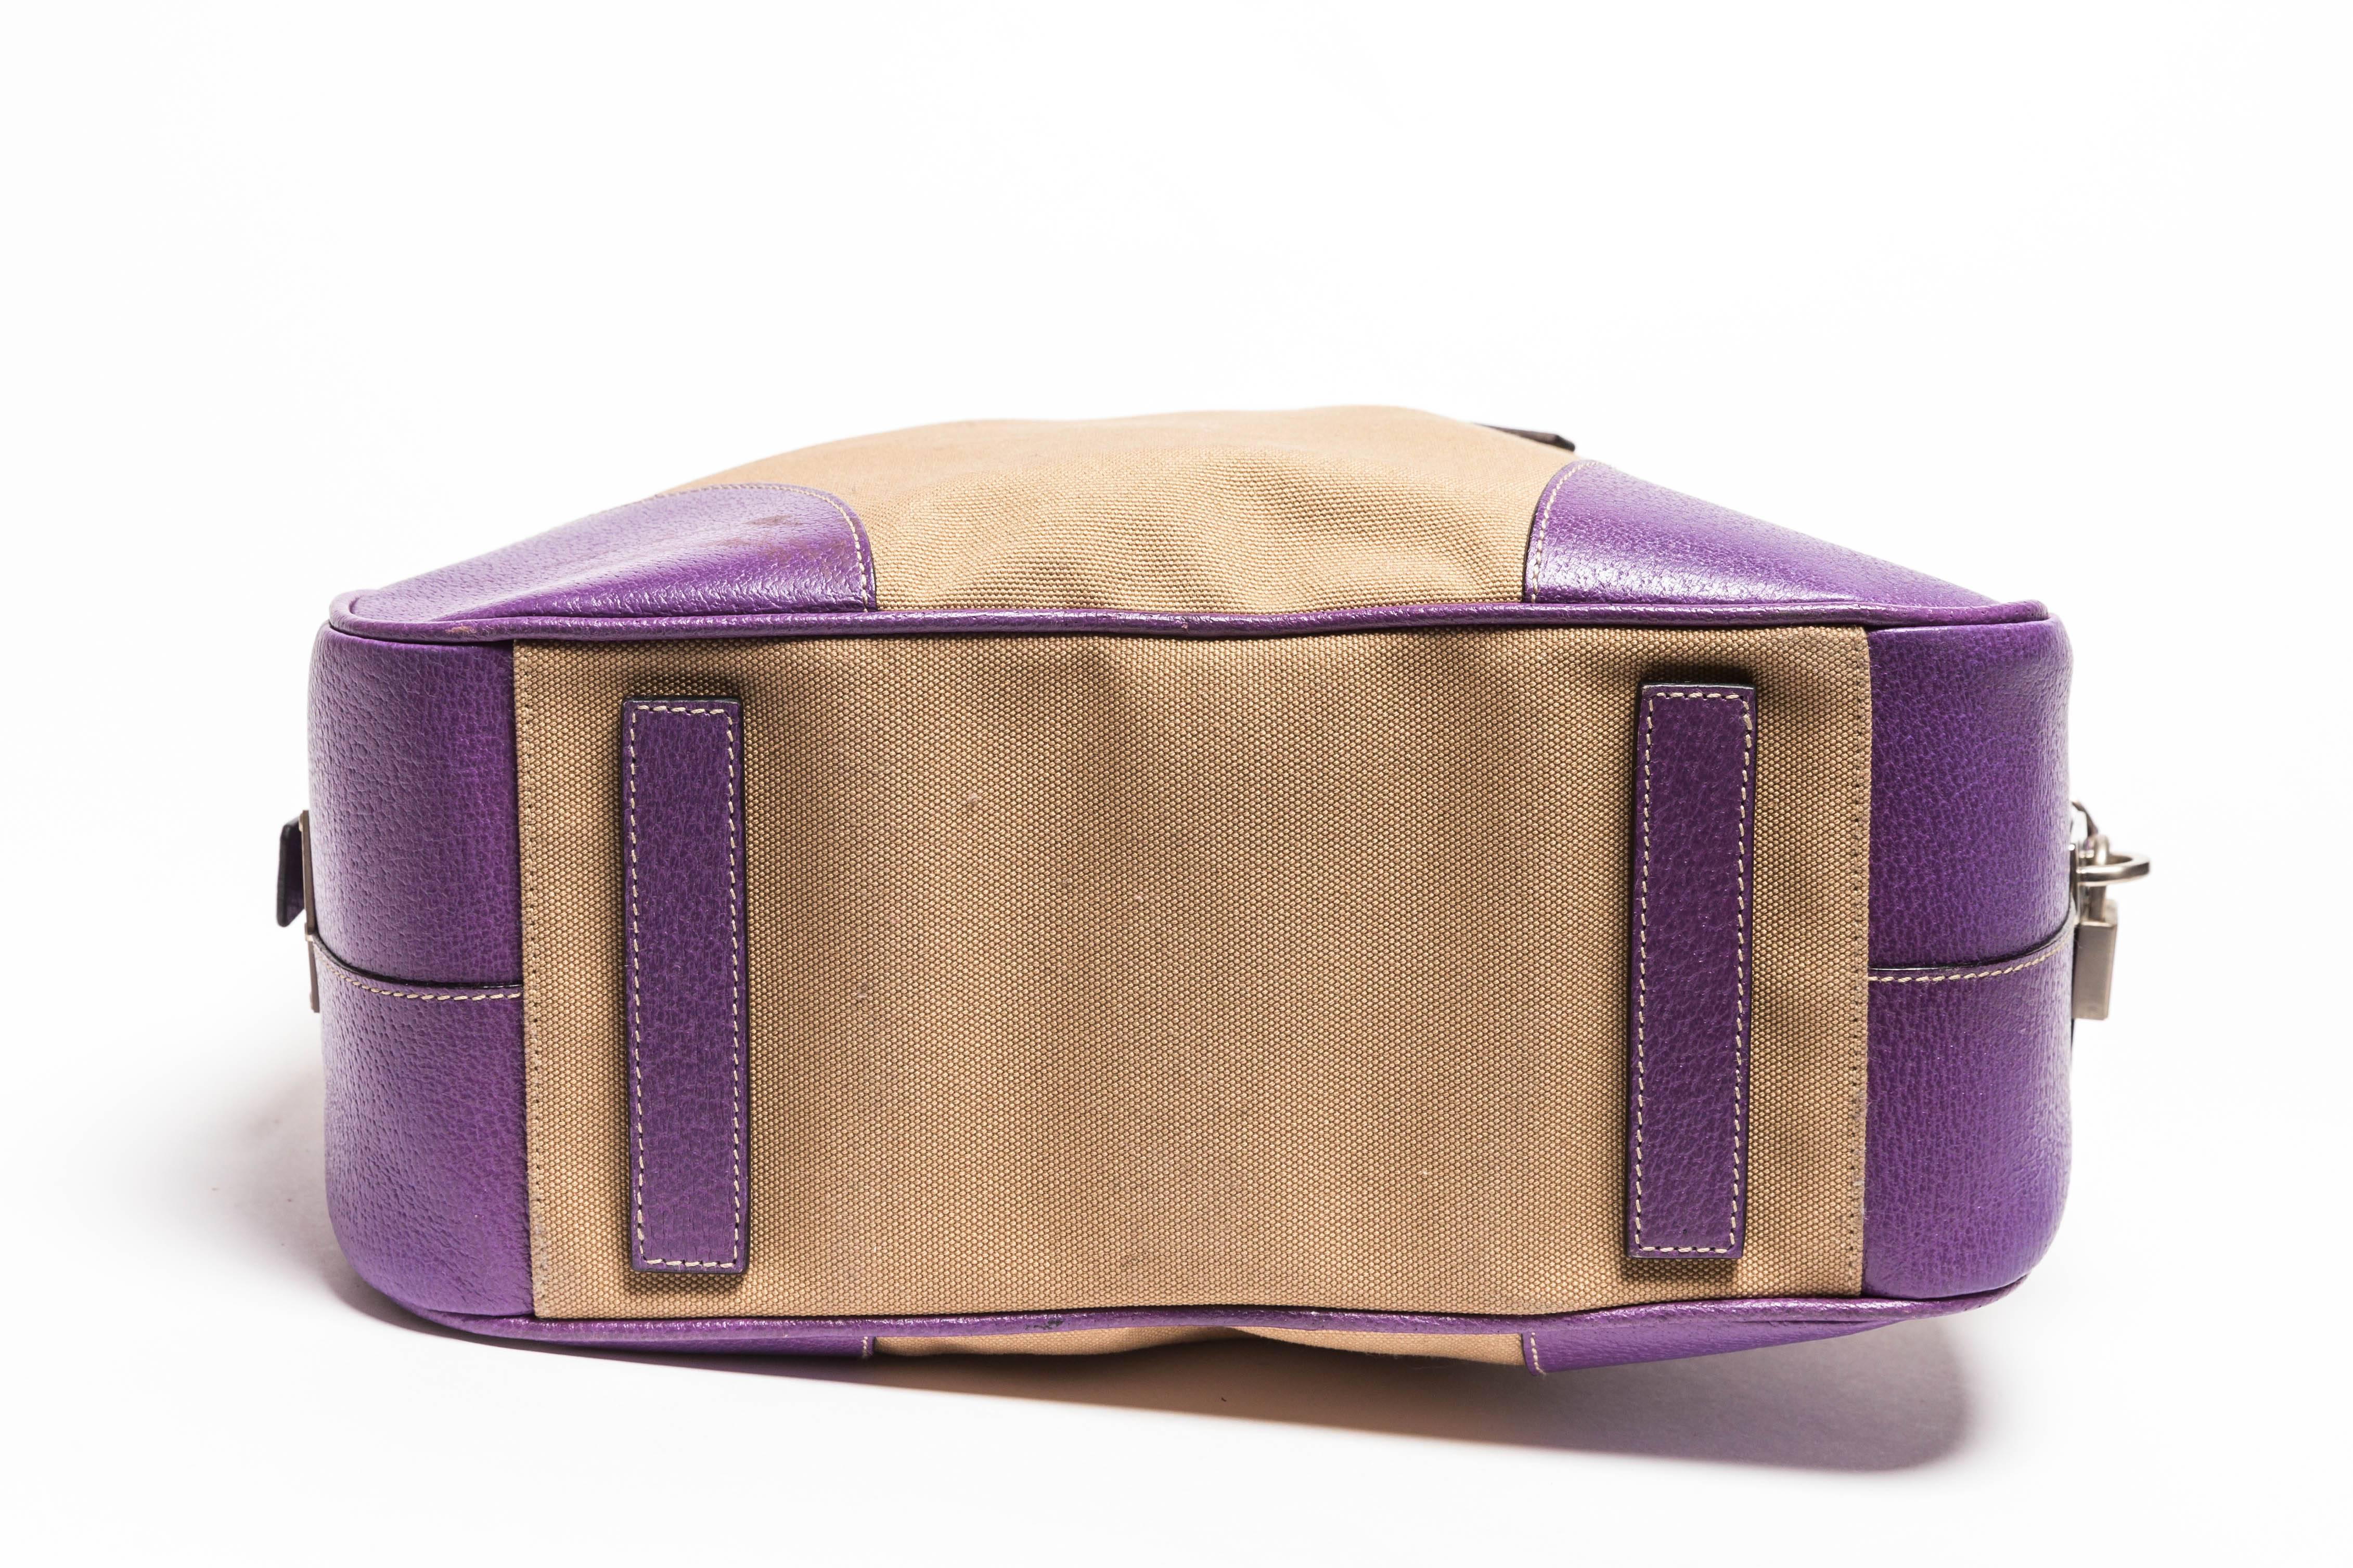 42d7702f7de9 ... shop prada canvas and purple leather top handle bag with lock keys and  luggage tag for